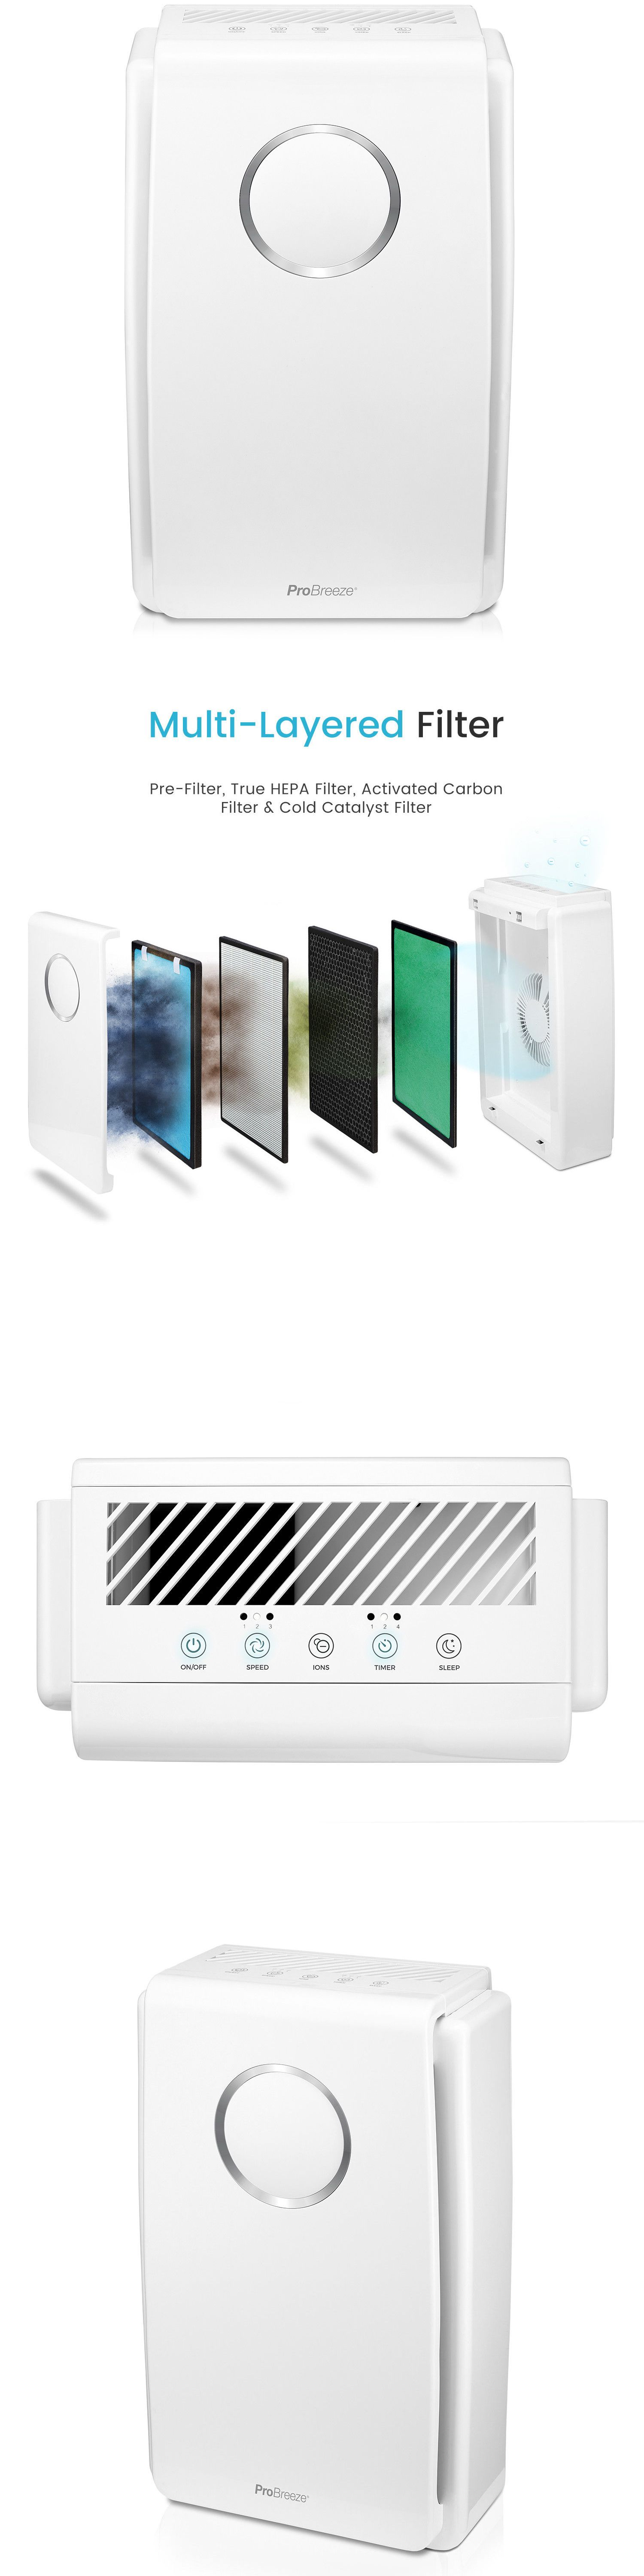 Air Purifiers 43510 Pro Breeze 5 In 1 Air Purifier True Hepa Carbon Cold Catalyst And Ionizer Buy It Now Only 119 99 O Air Purifier Purifier Ionizer